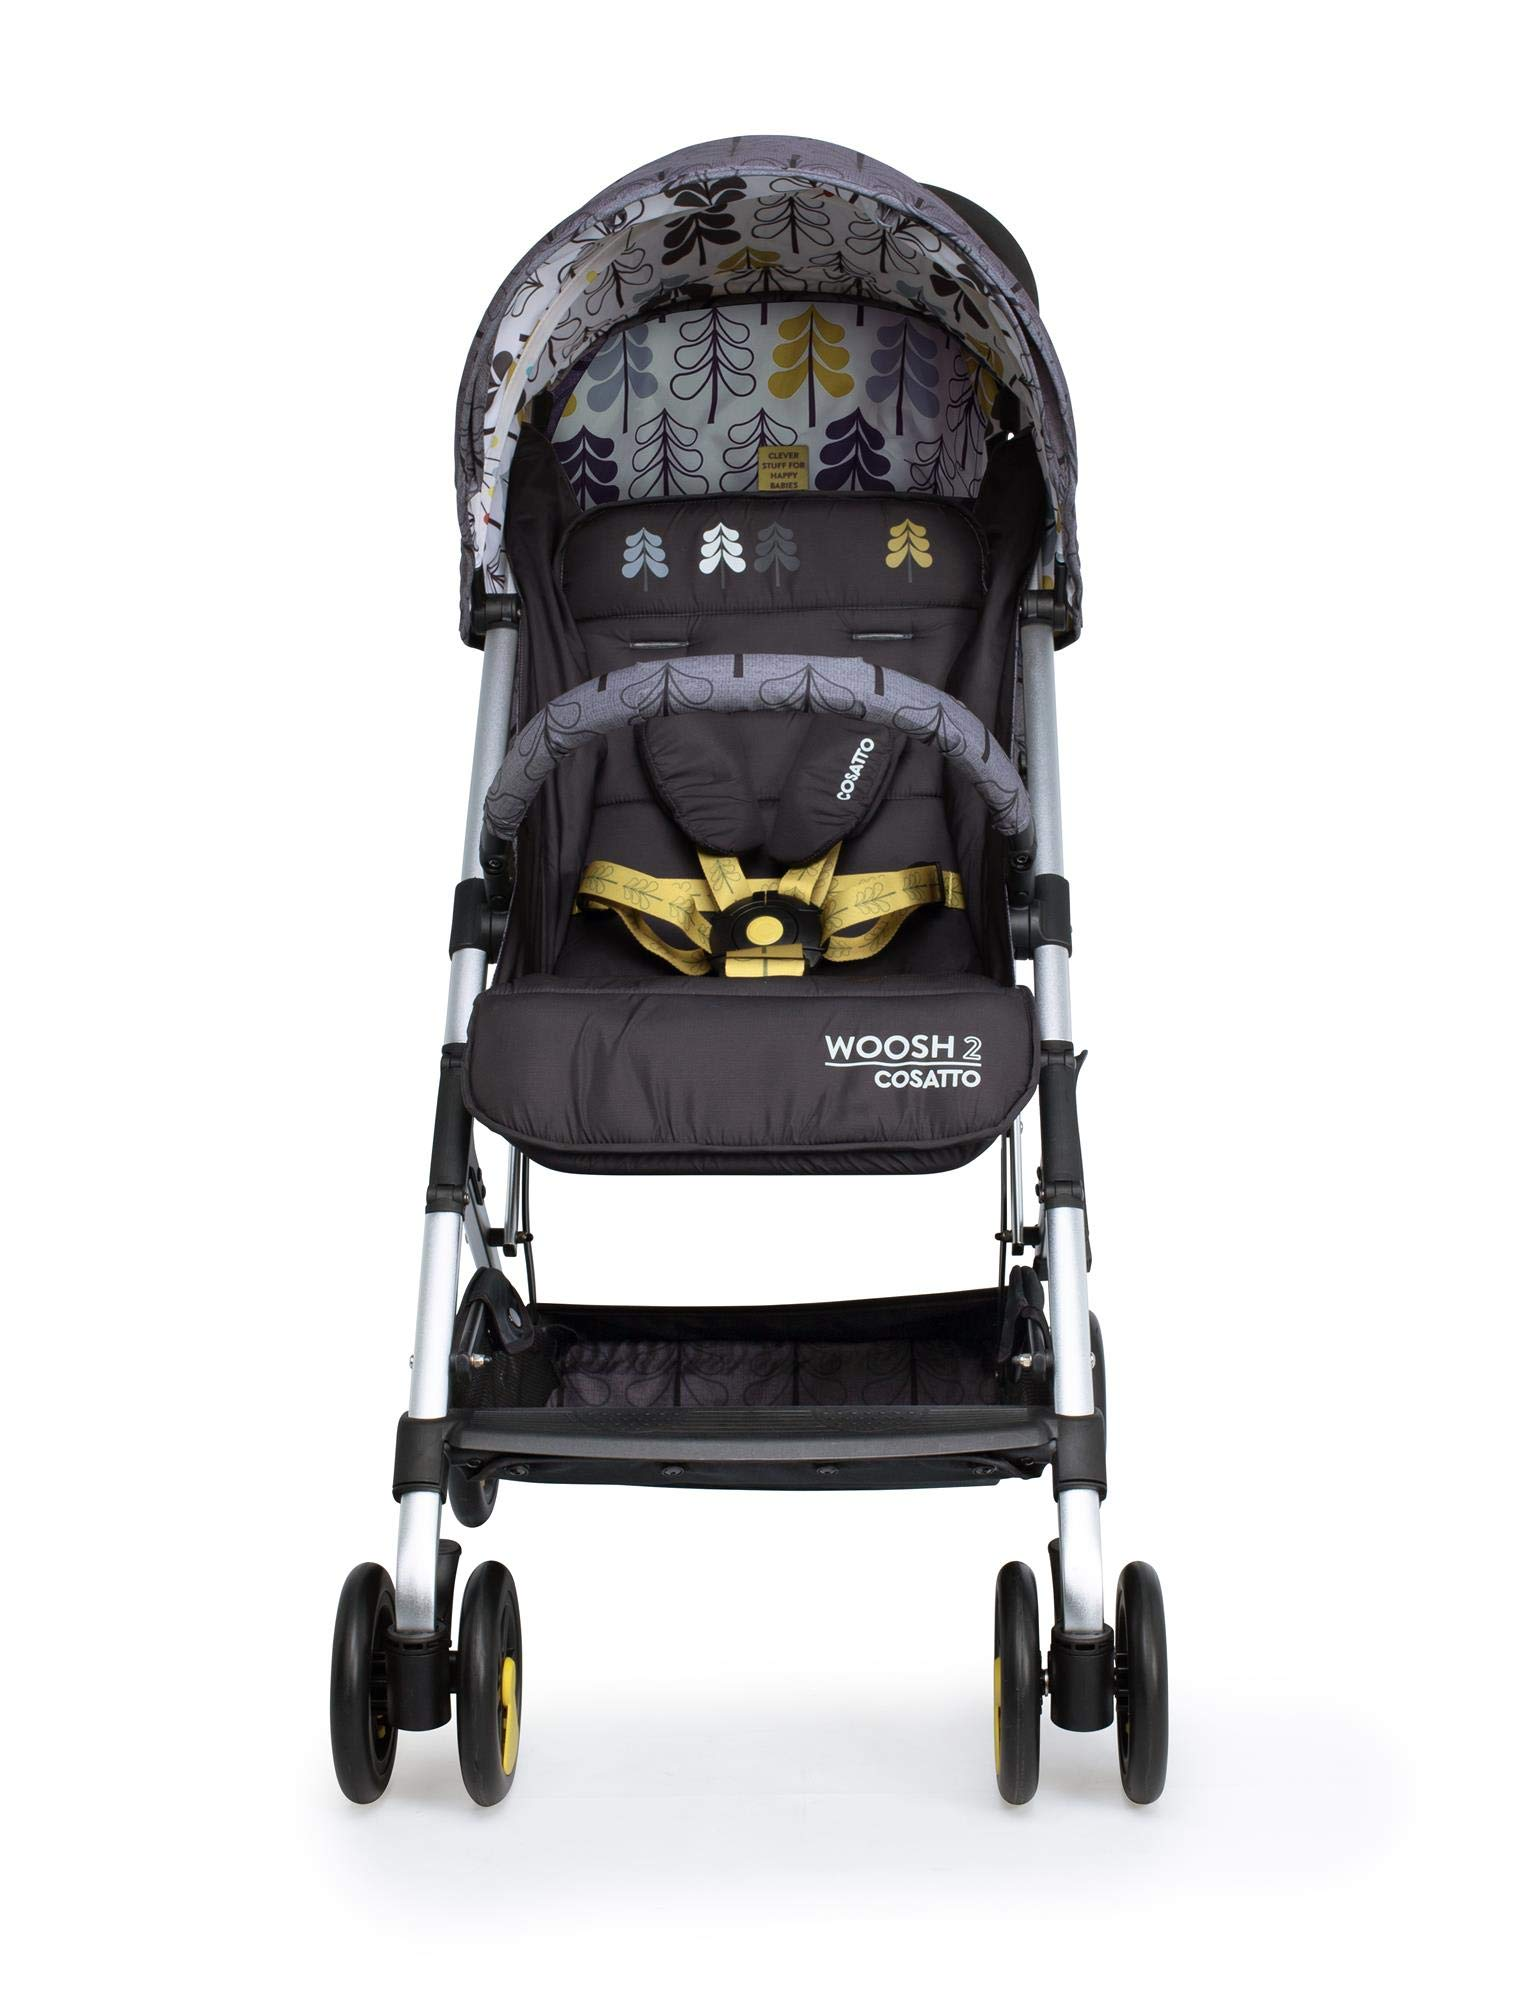 Cosatto Woosh 2 Stroller Fika Forest with raincover and Bumper bar Birth to 25kg Cosatto INCLUDES: The pushchair itself, Raincover, Bumper bar,4 year guarantee(UK and Ireland only) Suitable from birth to max weight of 25kg. Lets your toddler use it for even longer. Lightweight, sturdy aluminium frame. Newborn recline. Lightweight waterproof Ripstop fabric on seat. Lockable swivel front wheels for quick manoeuvres Roomy seat for extra comfort. Removable bumper bar for extra support. Magic bell. Front & rear suspension for a smooth ride. 4